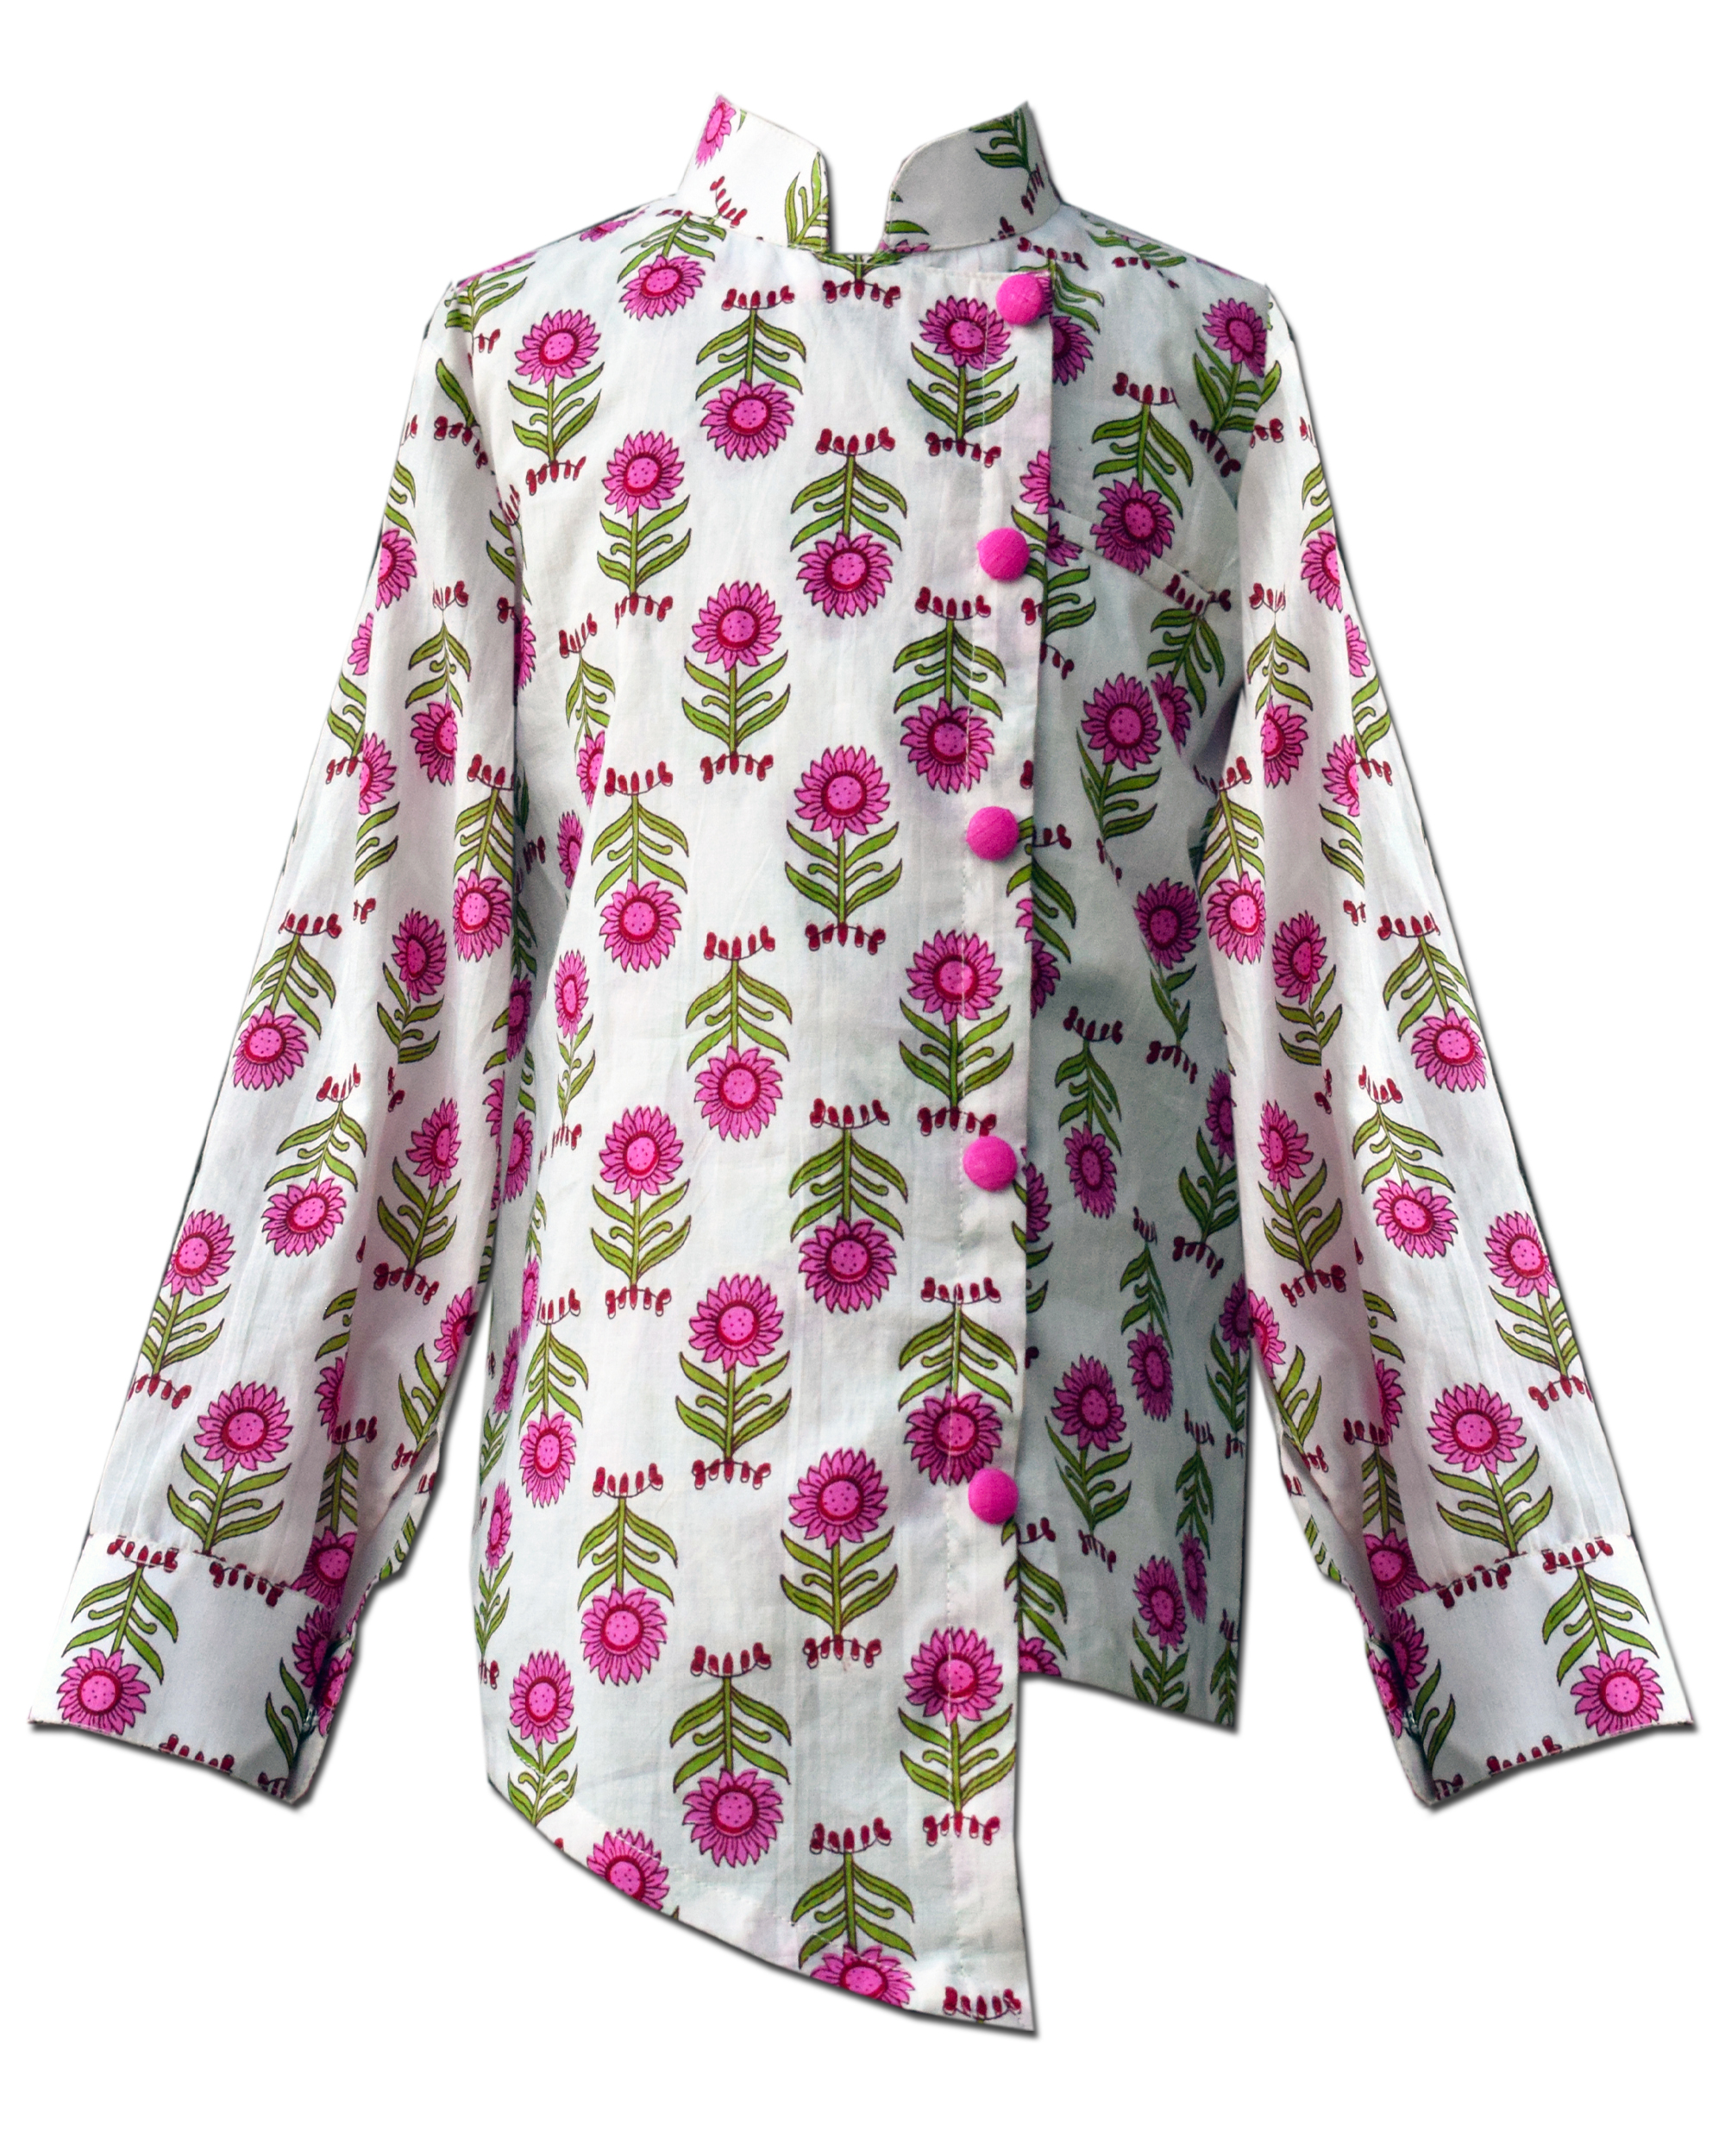 White and pink floral printed overlap shirt